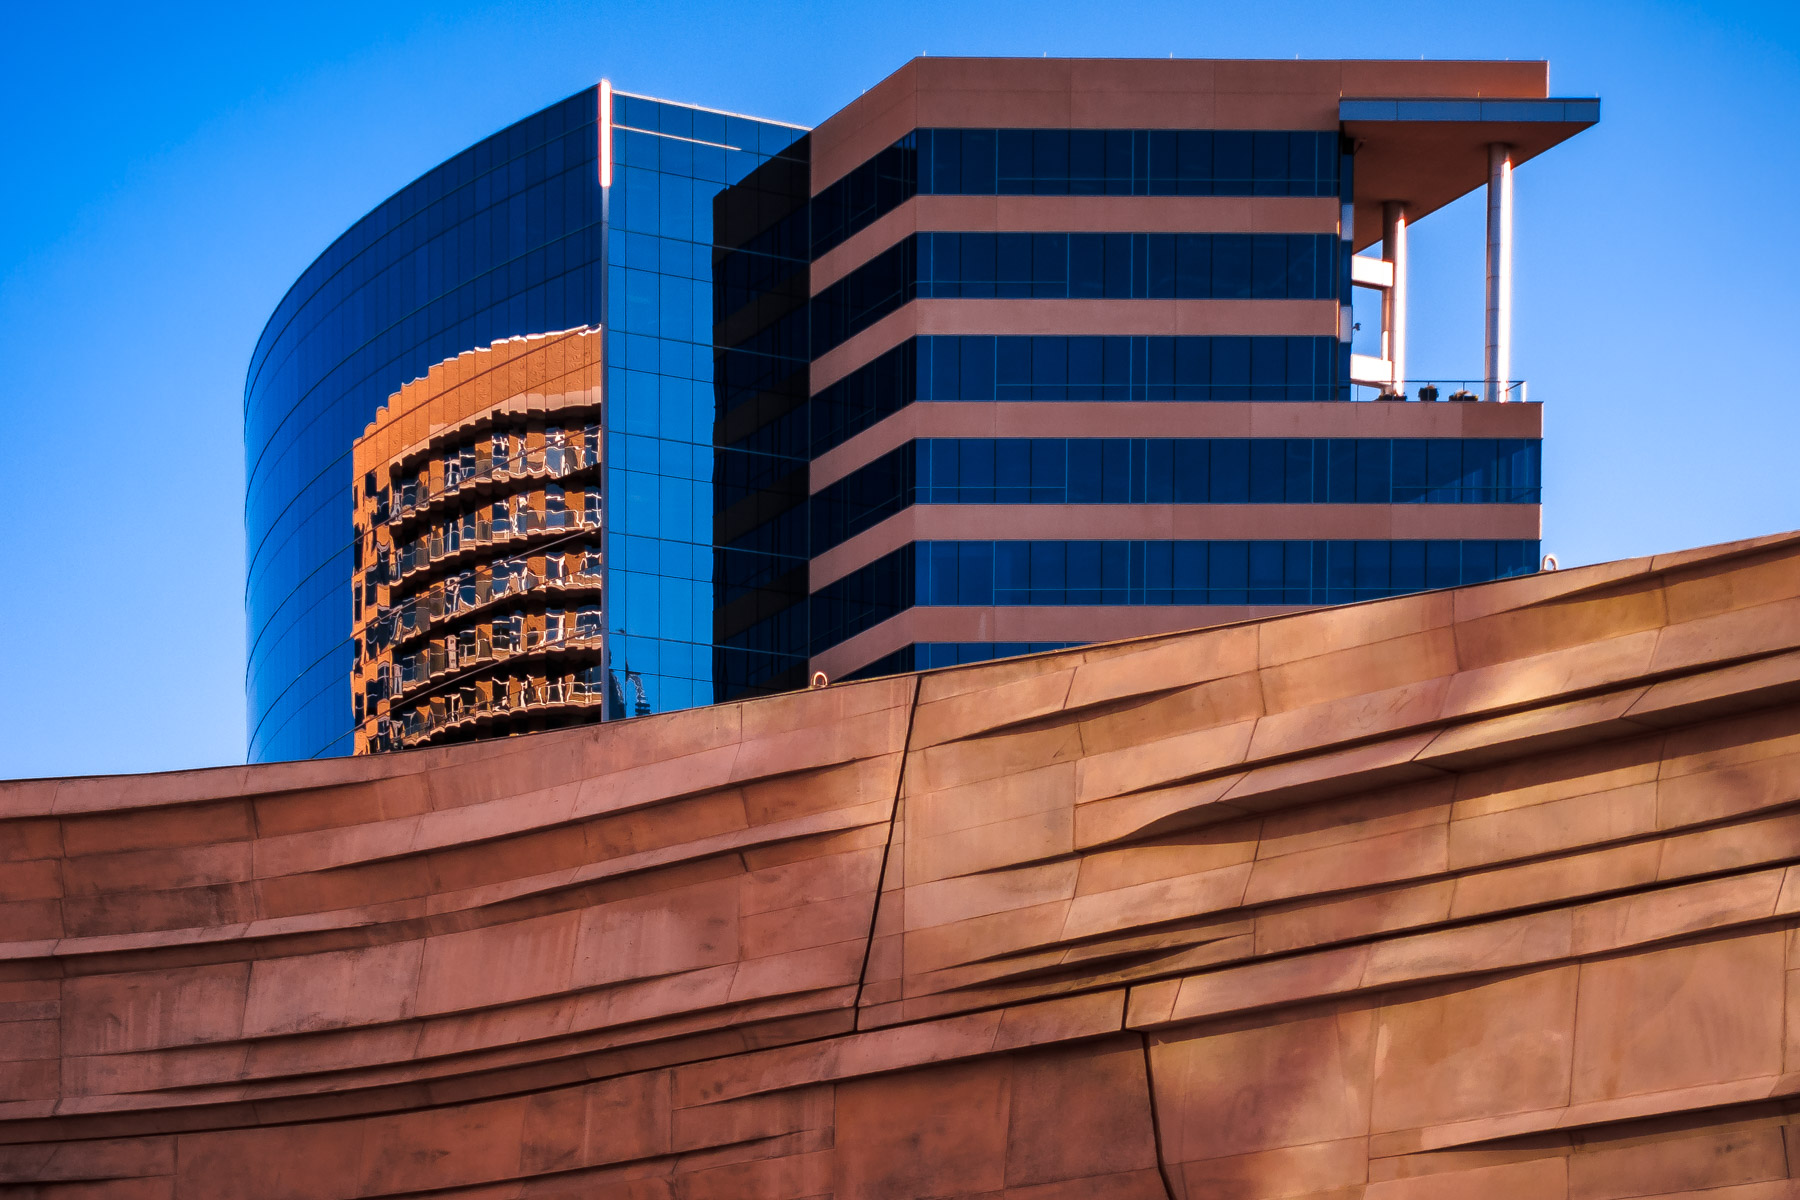 An adjacent building rises over a wall at Dallas' Perot Museum of Science & Nature.